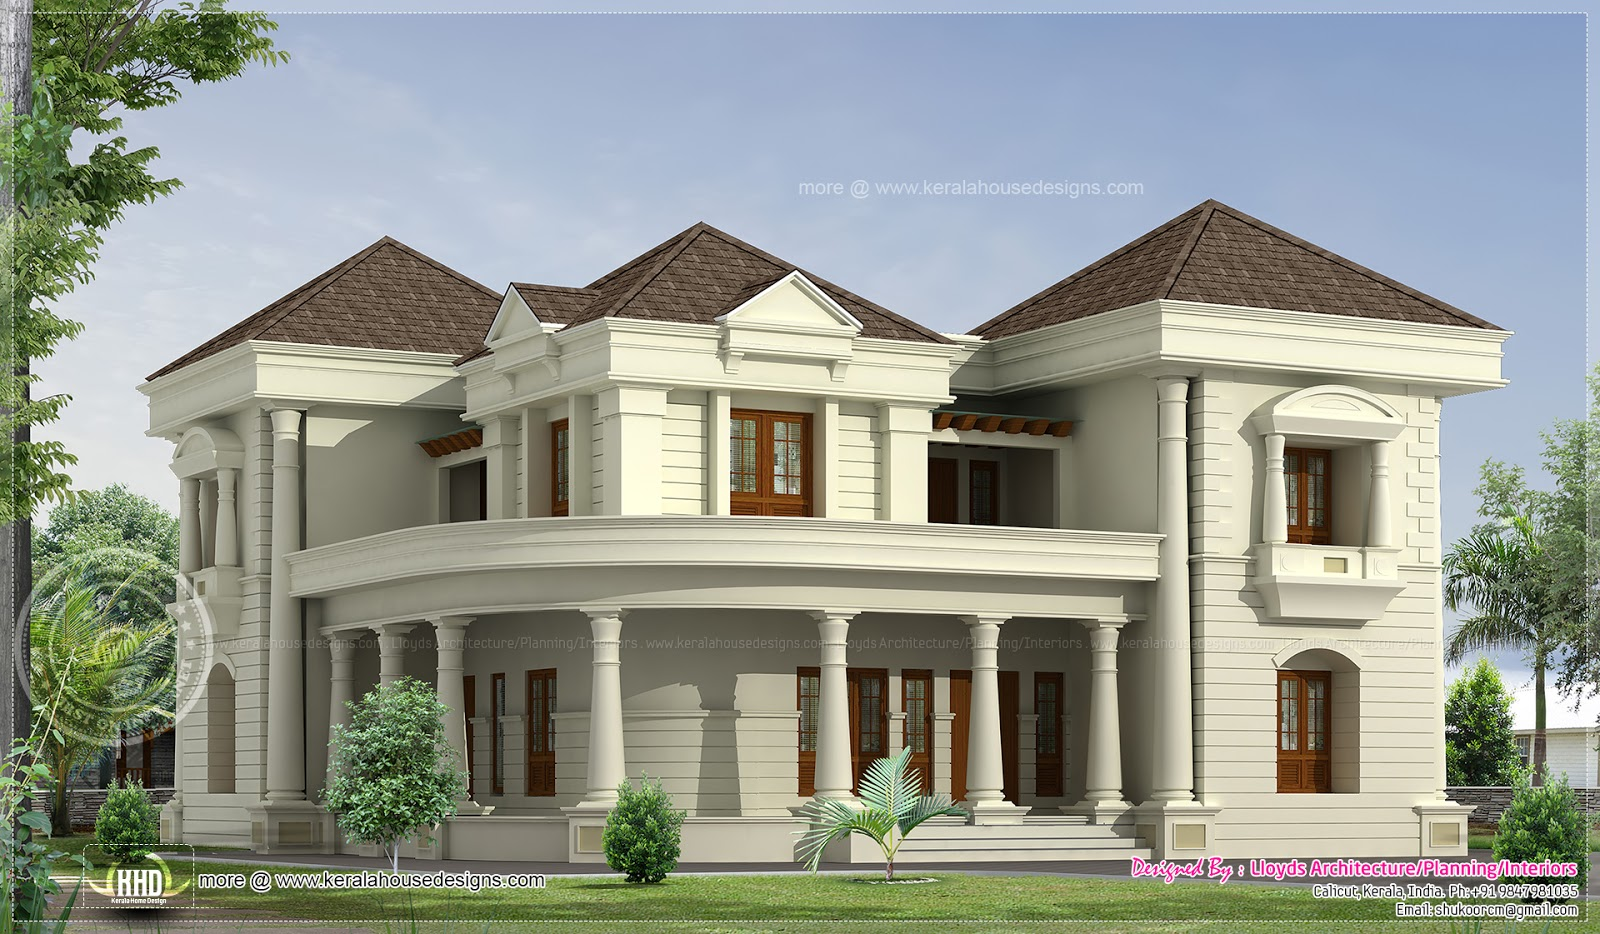 5 bedroom luxurious bungalow floor plan and 3d view for Bungalow plans and elevations